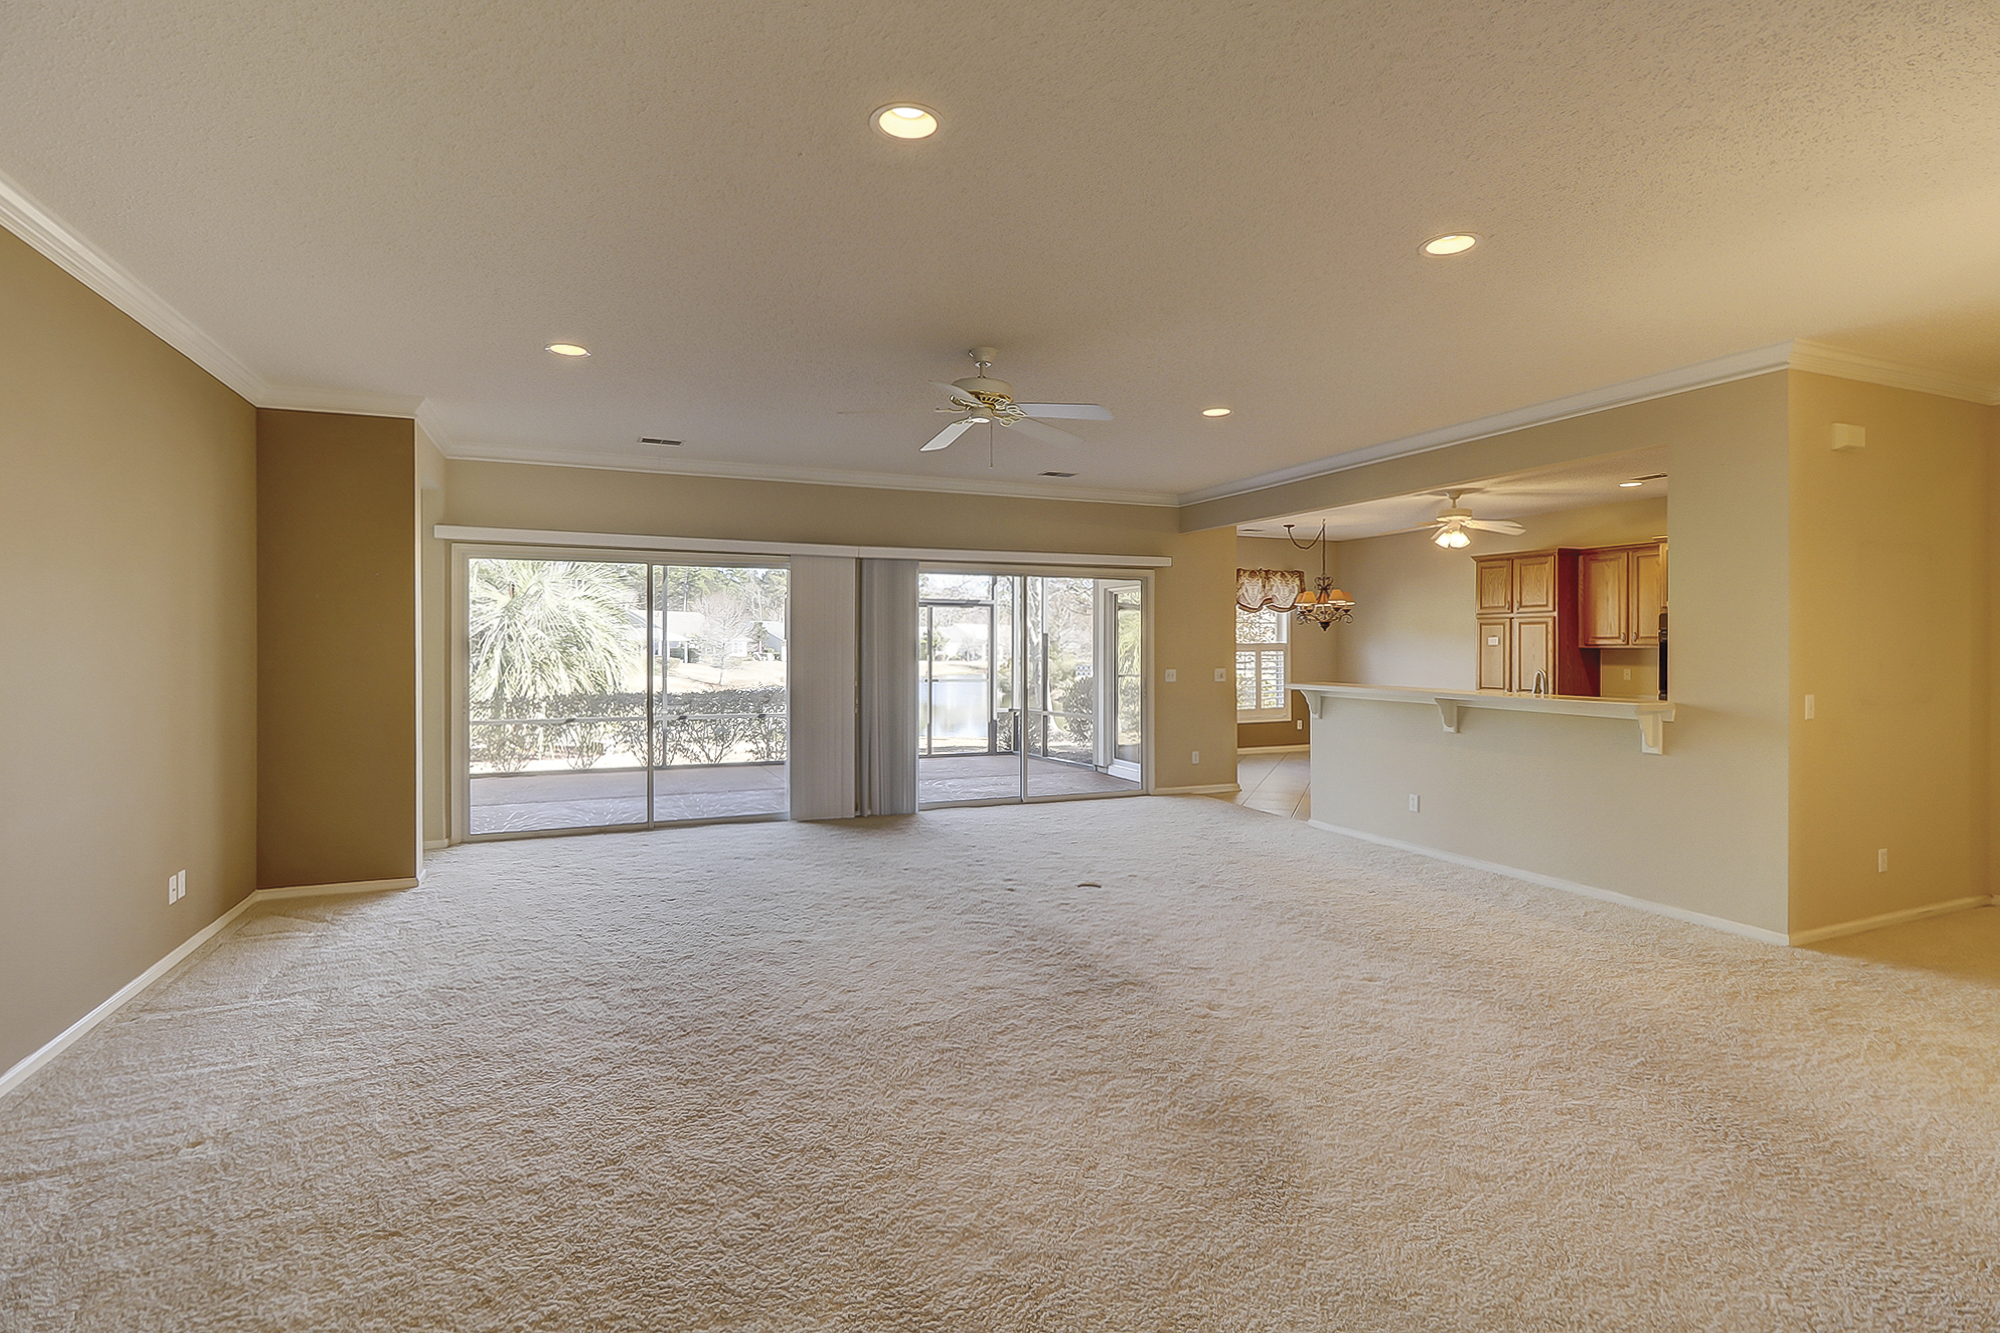 WOW, this Great Room is huge and open to the Kitchen, Dining Room, Breakfast Room and the expansive Lanai just adds more living space. Sun City